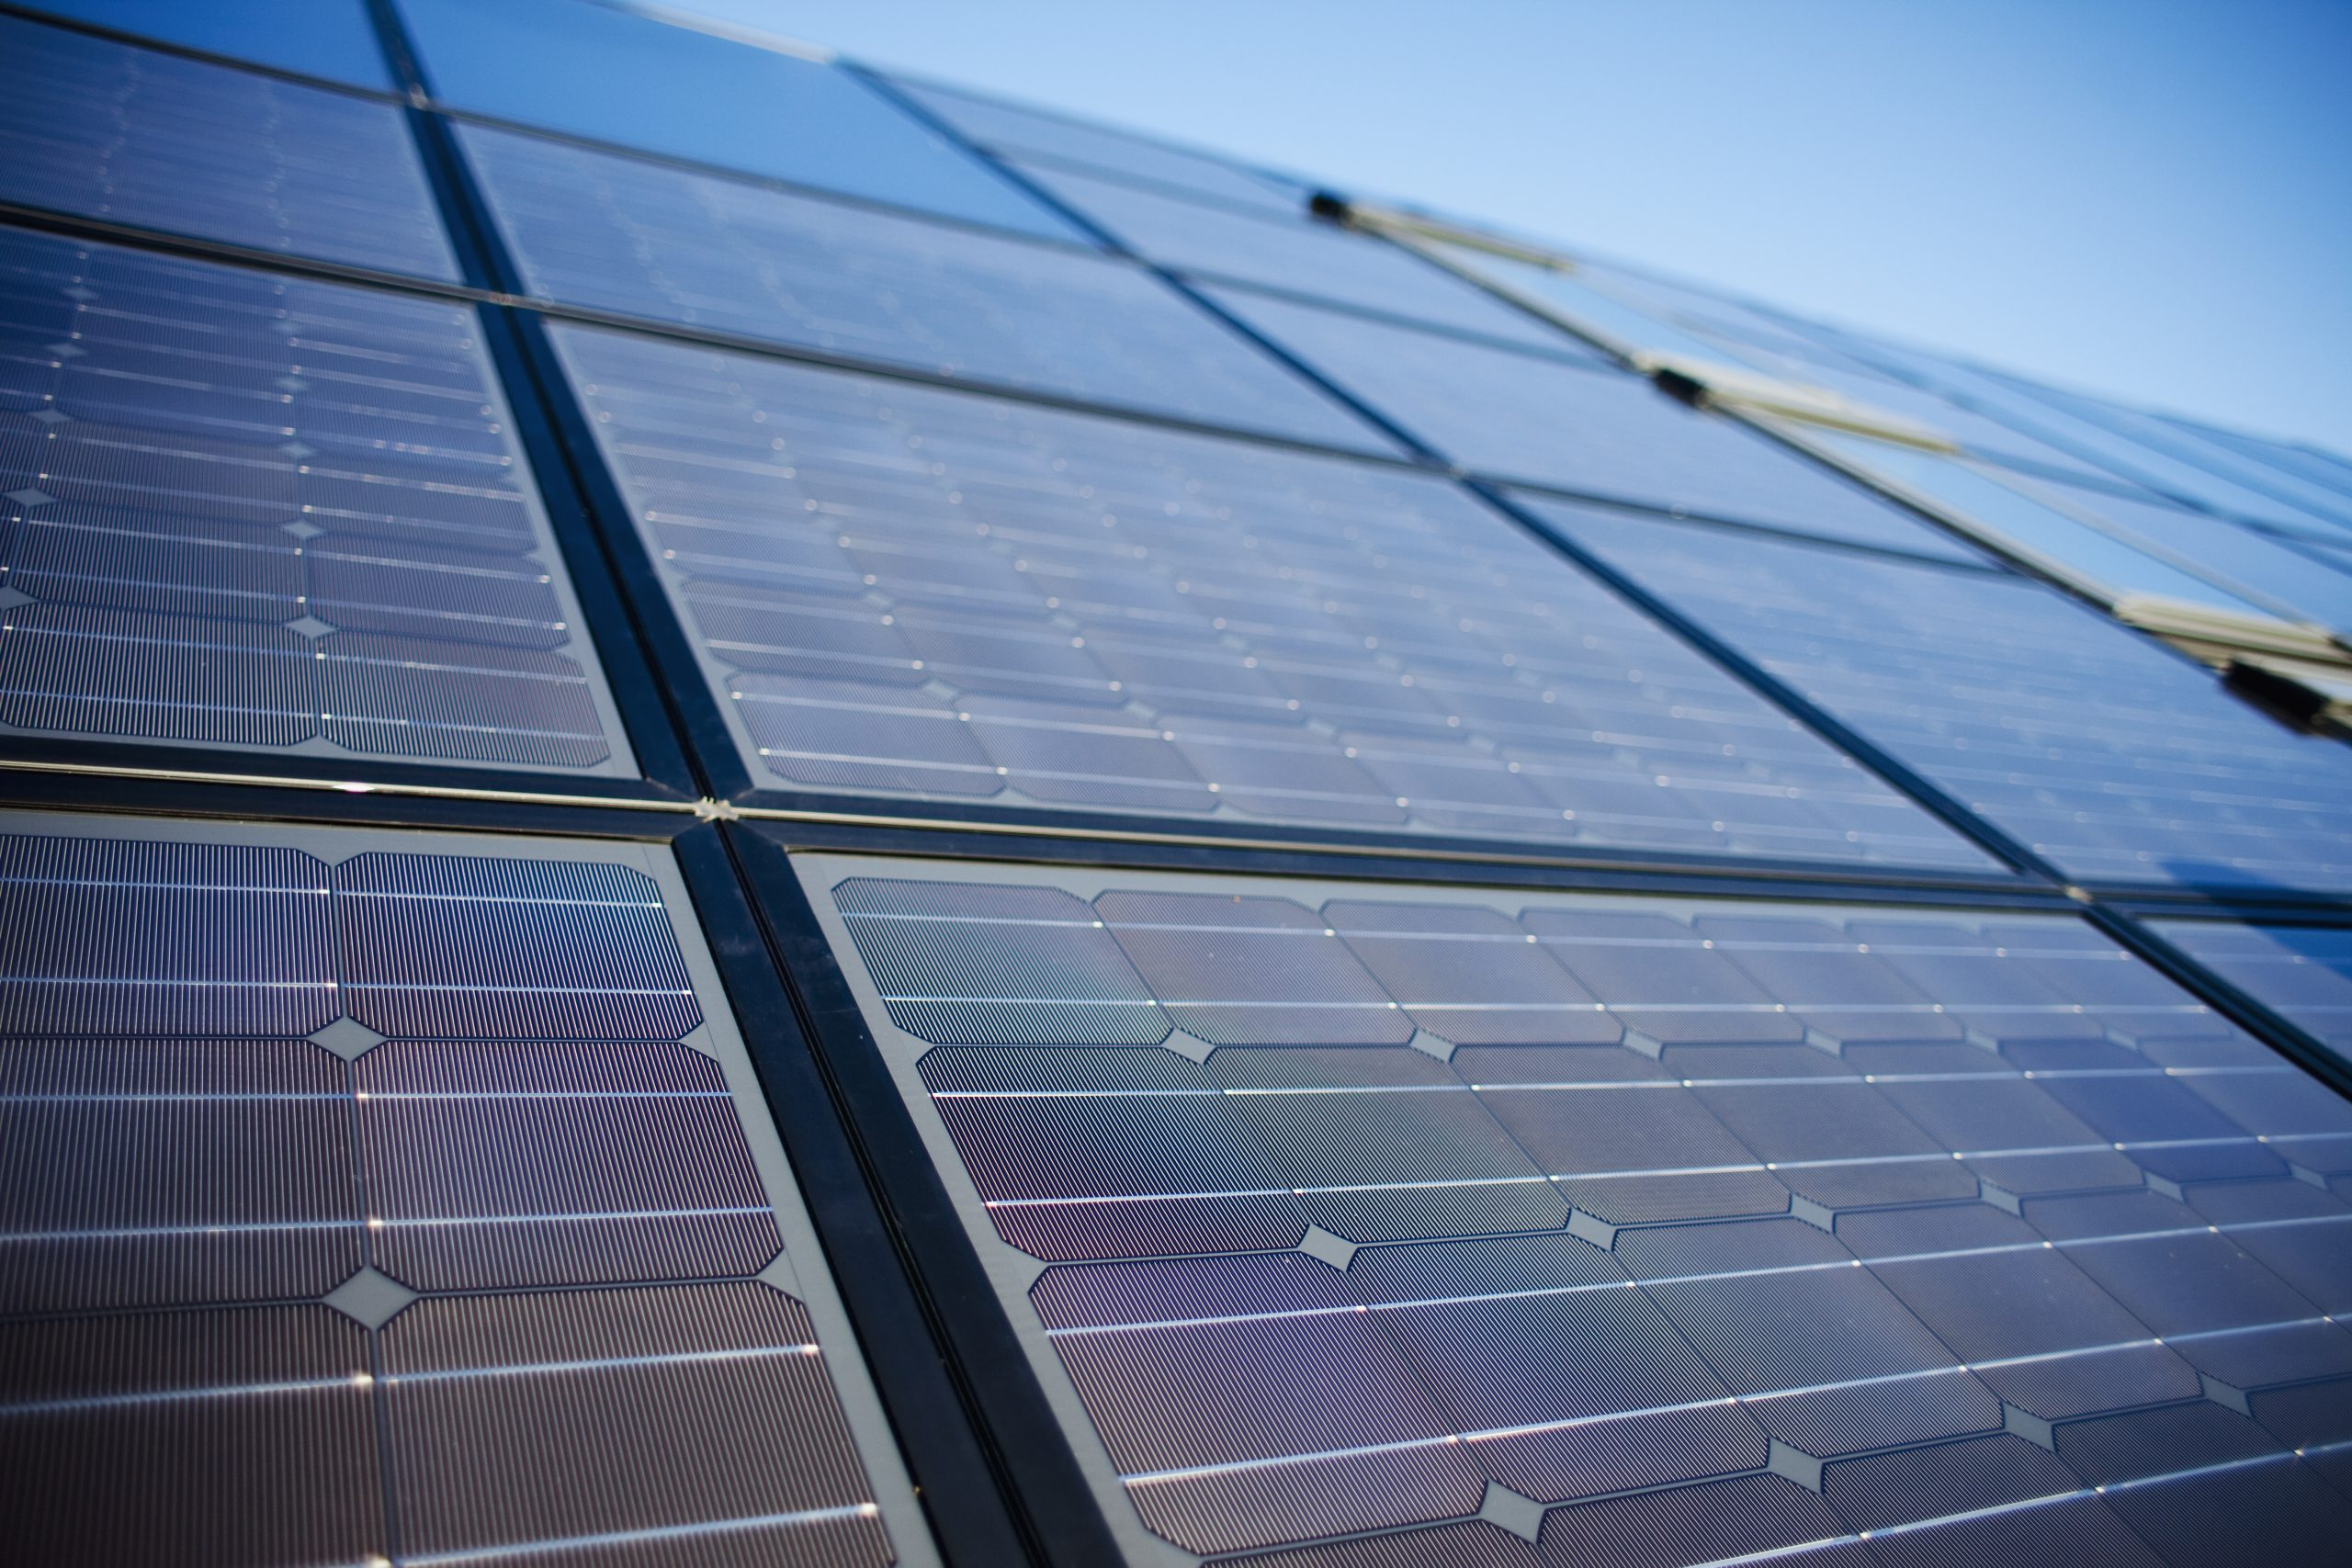 low-angle-view-of-solar-panels-against-sky-ED5WY8H-scaled.jpg